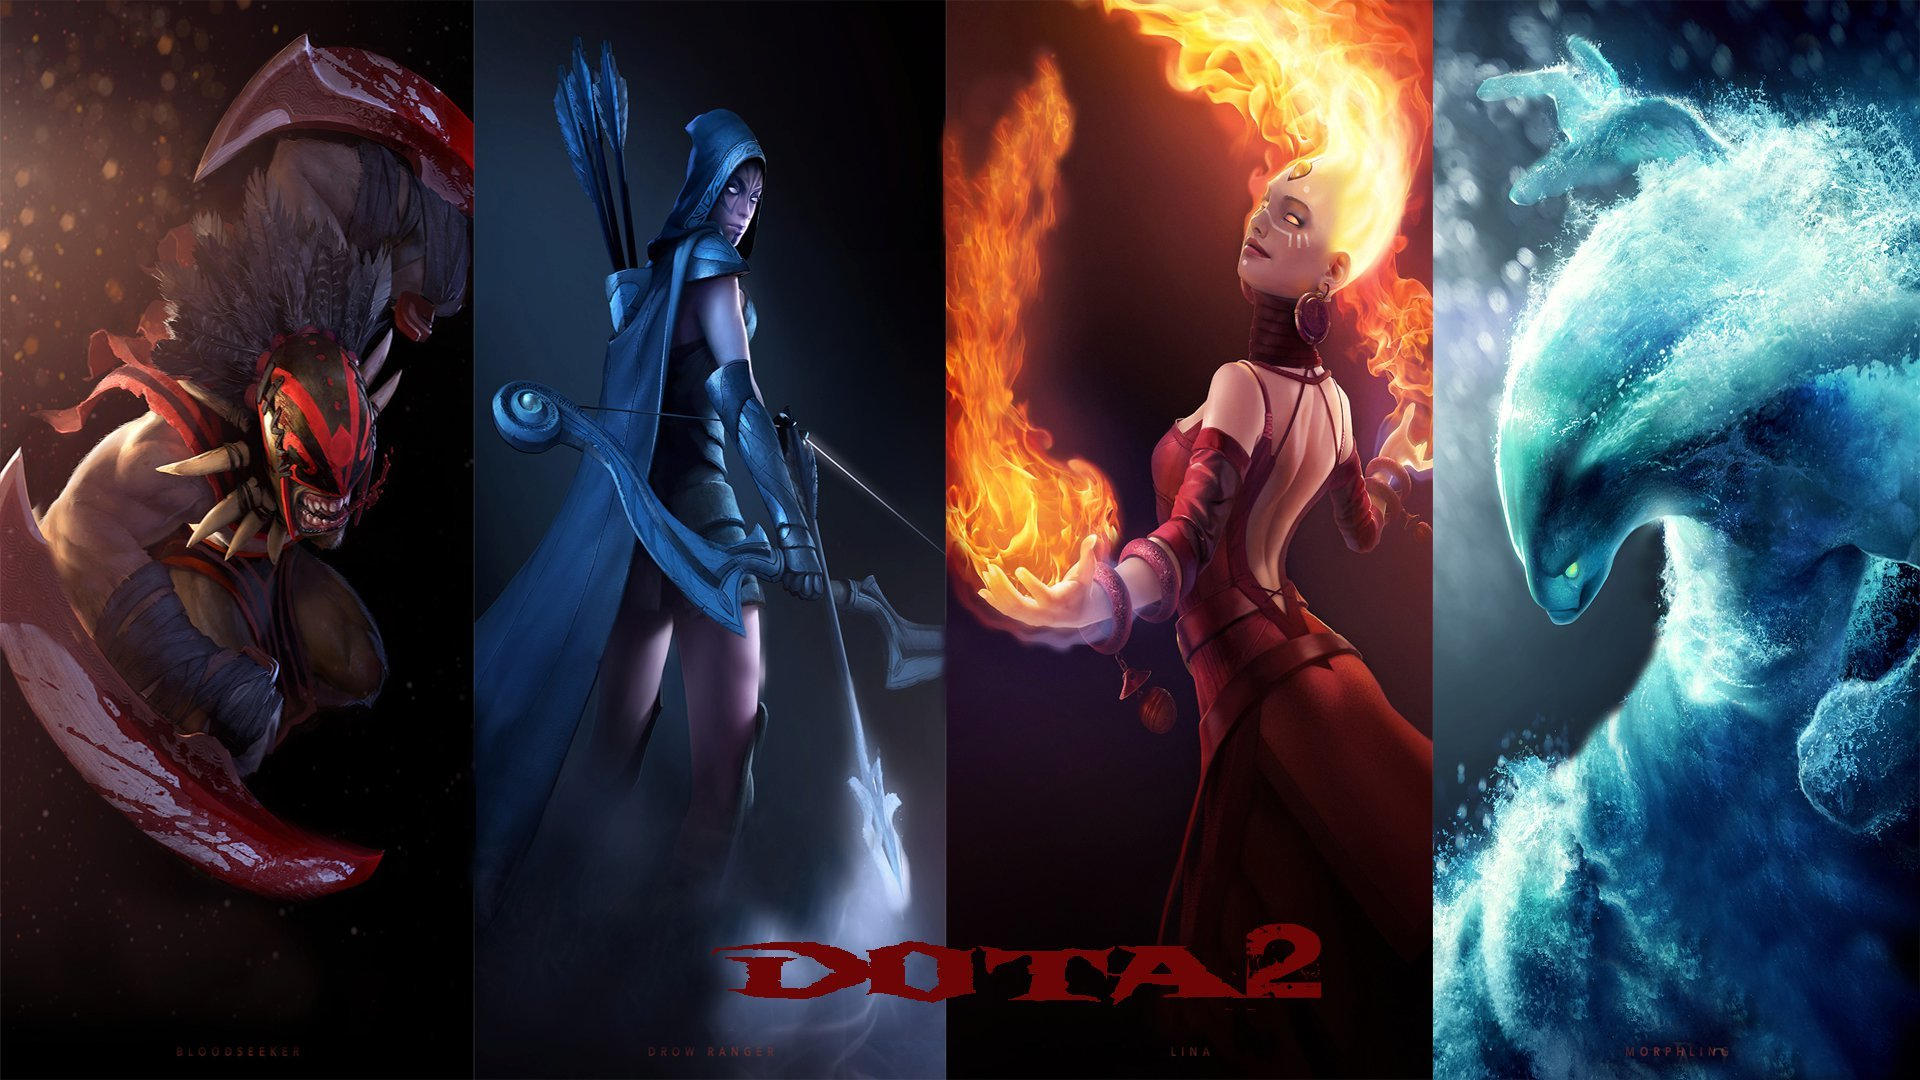 valve corporation Dota 2 HD Wallpaper